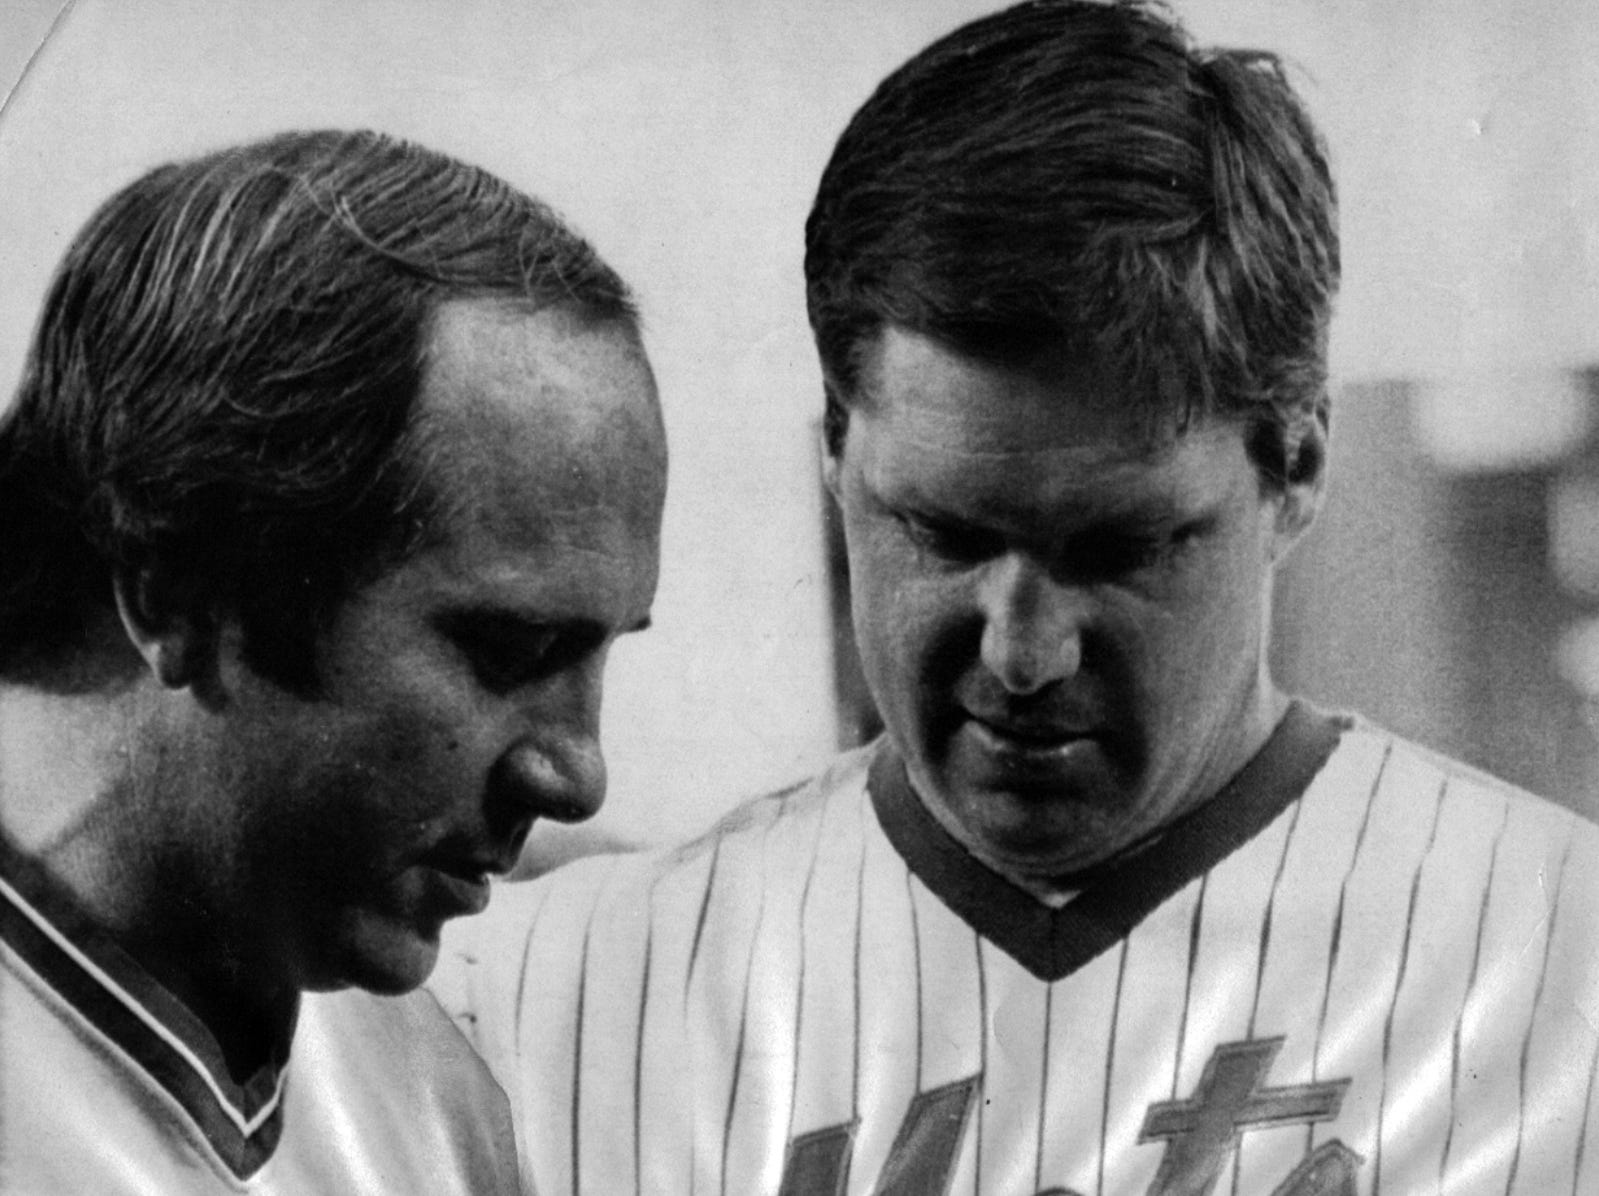 JULY 14, 1983: The Cincinnati Reds Johnny Bench, left, who is retiring after this season from baseball gets a pendant from former teammate and now a New York Met, Tom Seaver before the game at Shea Stadium. Bench did not play in the game but the Reds rolled over the Mets 3-1 in the second game of the series. AP Photo/G. Paul Burnett scanned August 26, 2013 FROM A SUNDAY SEPTEMBER 11, 1983 CAPTION: His last trip around the league included reunions with the likes of Joe Morgan, Pete Rose and Tony Perez in Philadelphia. After being honored by the Phillies, Bench went out and bear them with a three-run pinch-hit homer. At the ceremonies in New York, Bench shared a moment with his good friend and former batterymate, Tom Seaver, pictured.